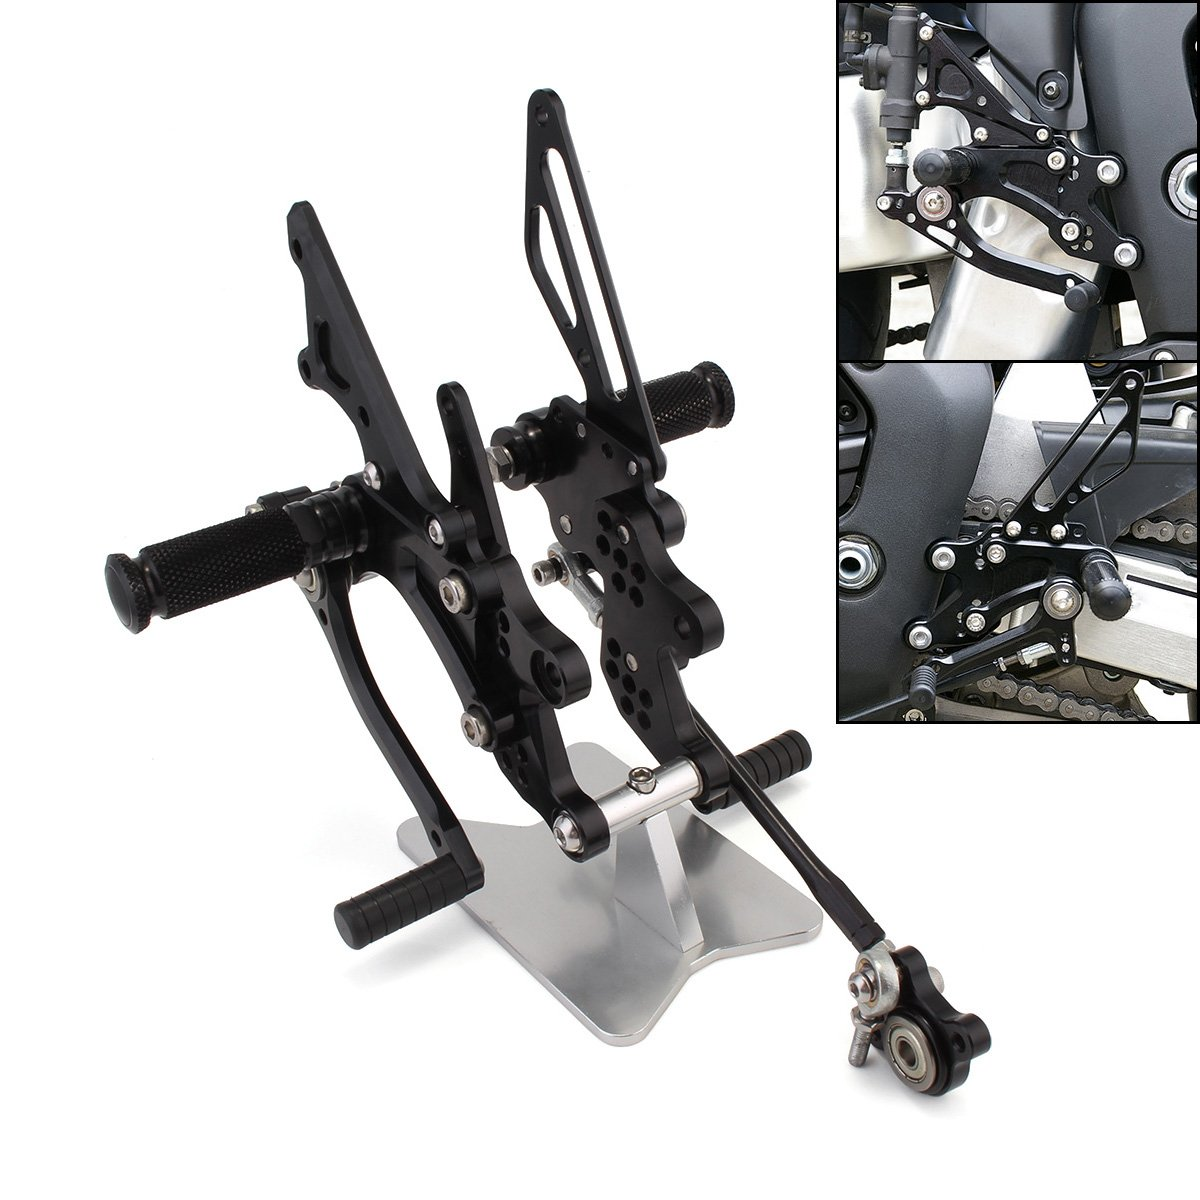 NEVERLAND Black Motorcycle CNC Racing Footpegs Rearsets Rear Set for Honda CBR1000RR 2004 2005 2006 2007